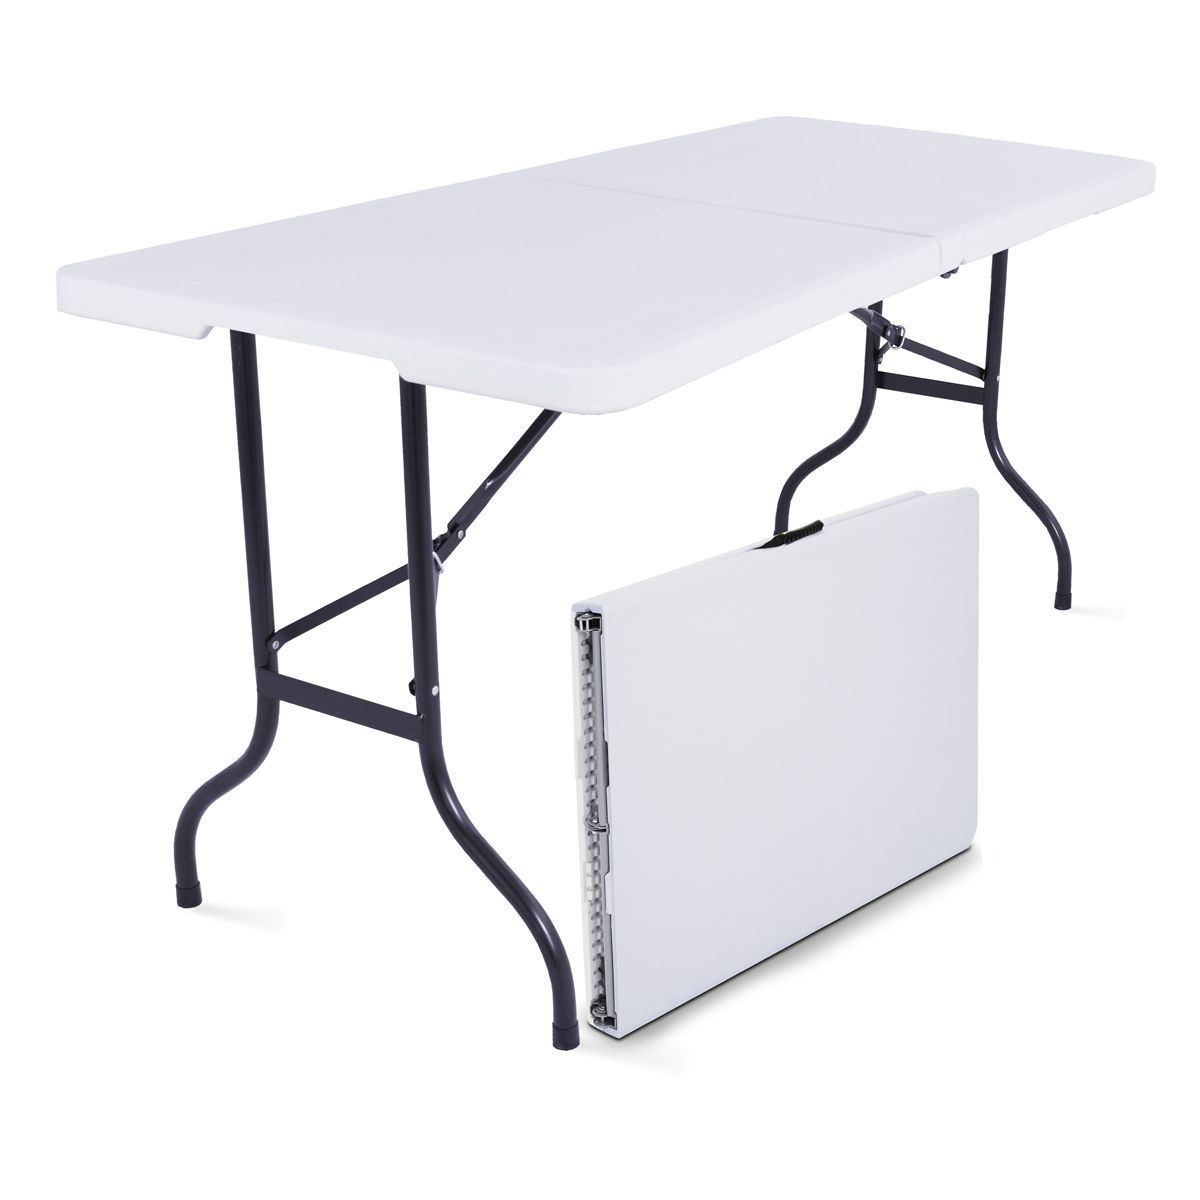 Table Rectangulaire 8 Personnes Table Pliante 8 Personnes